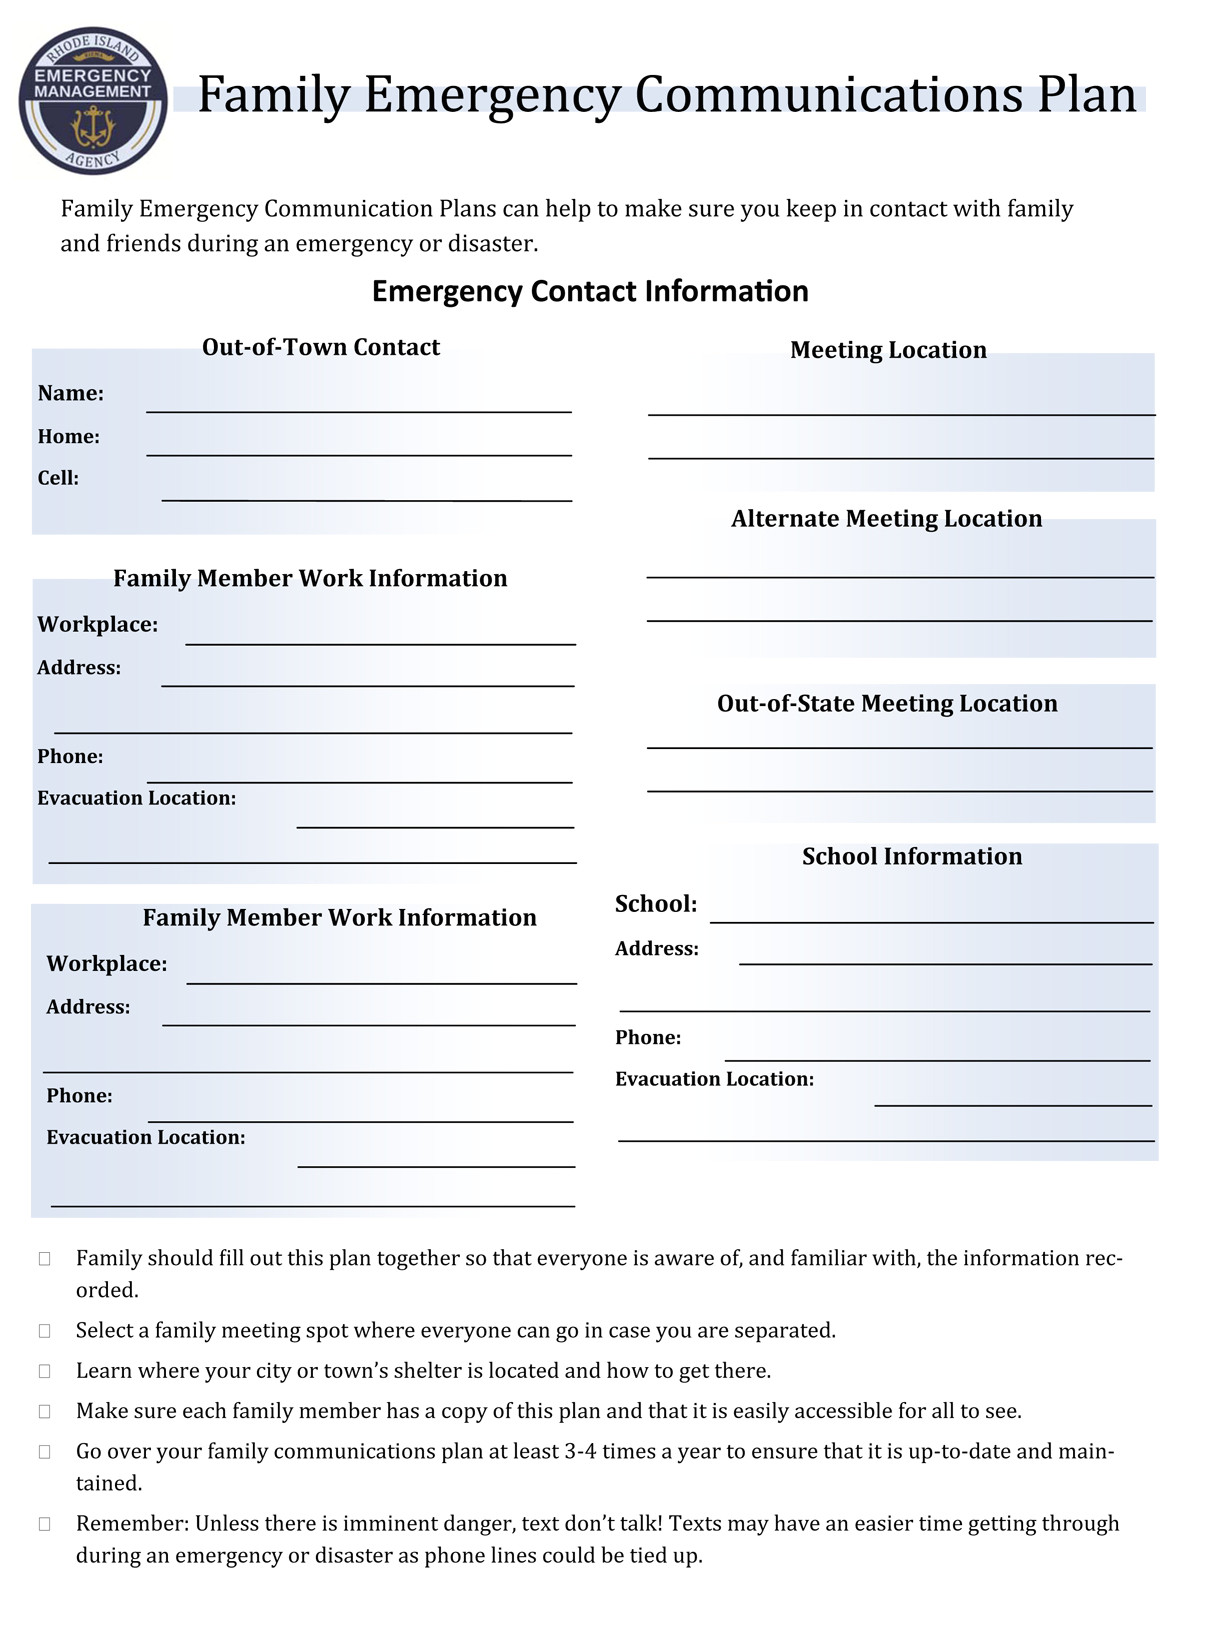 Emergency Communications Plan Template Prepare Emergency Management Agency